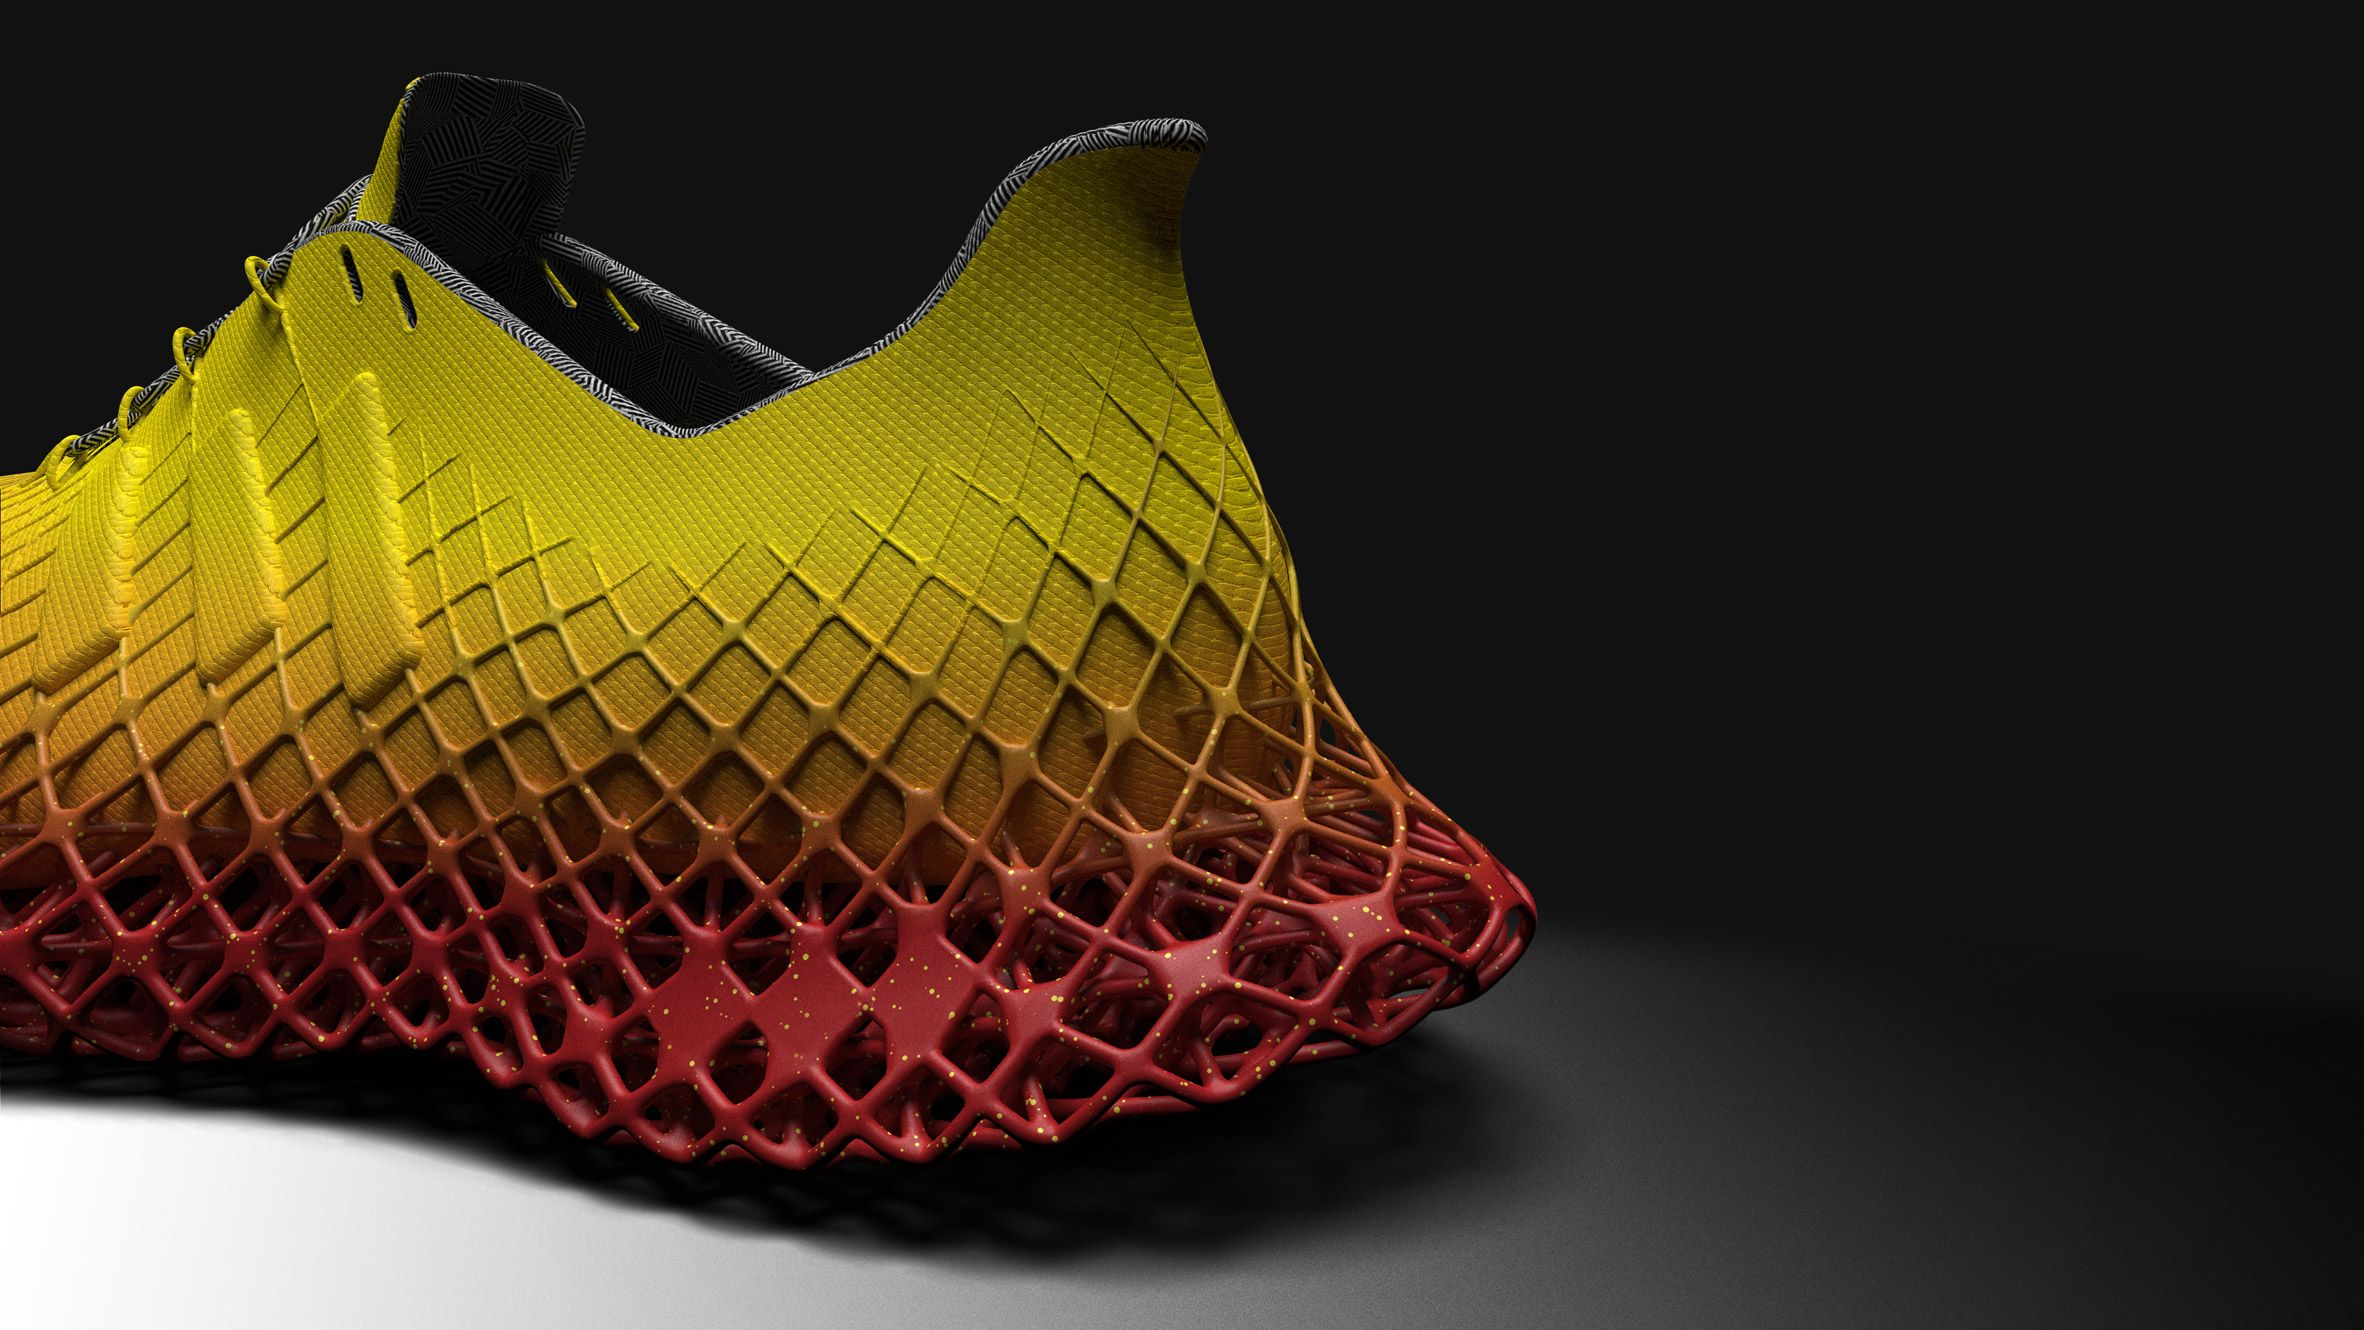 34847195607be3 Aarish Netarwala s resistance trainers mimic the effect of running on sand